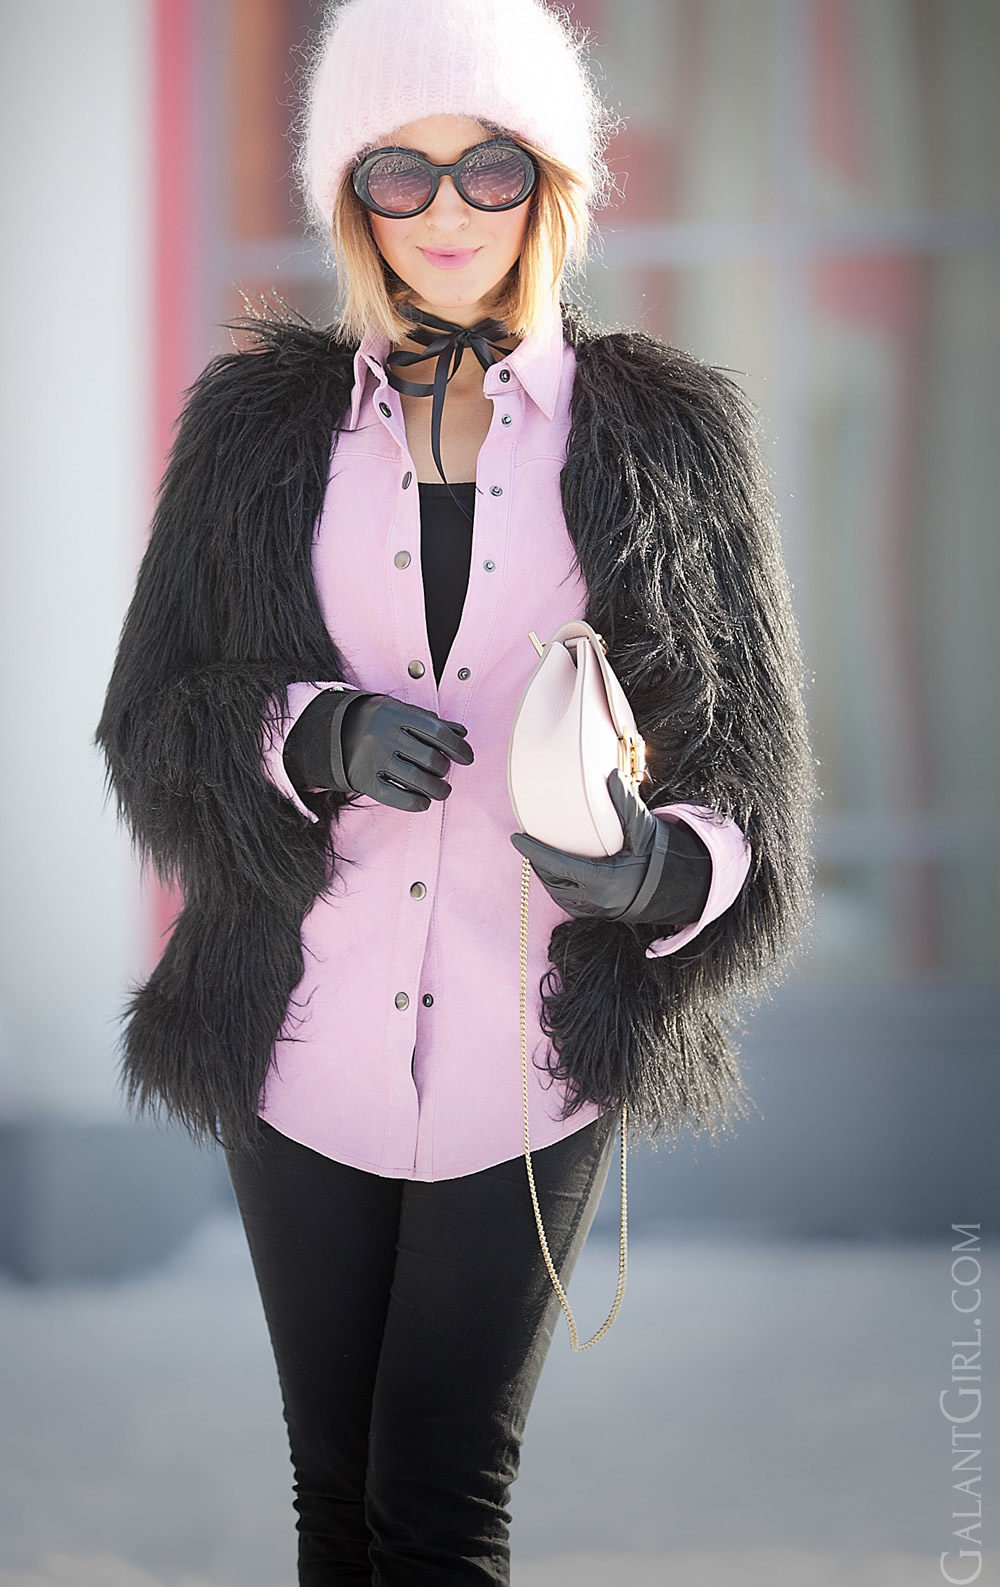 faux fur coat outfit for really cold winter days, chloe drew bag in blush, cold weather outfits,